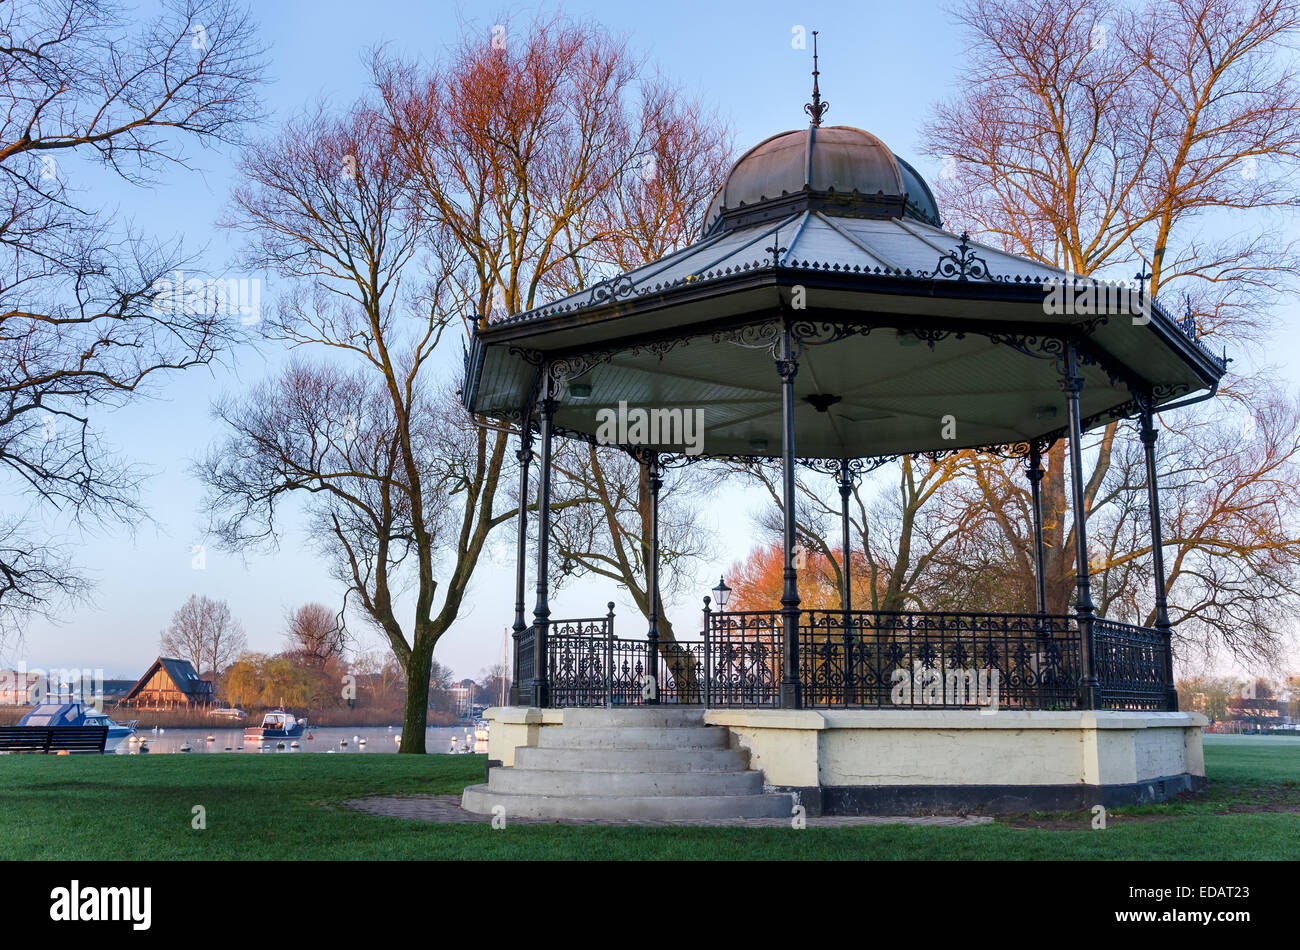 Dawn at the bandstand on Christchurch quay in Dorset - Stock Image